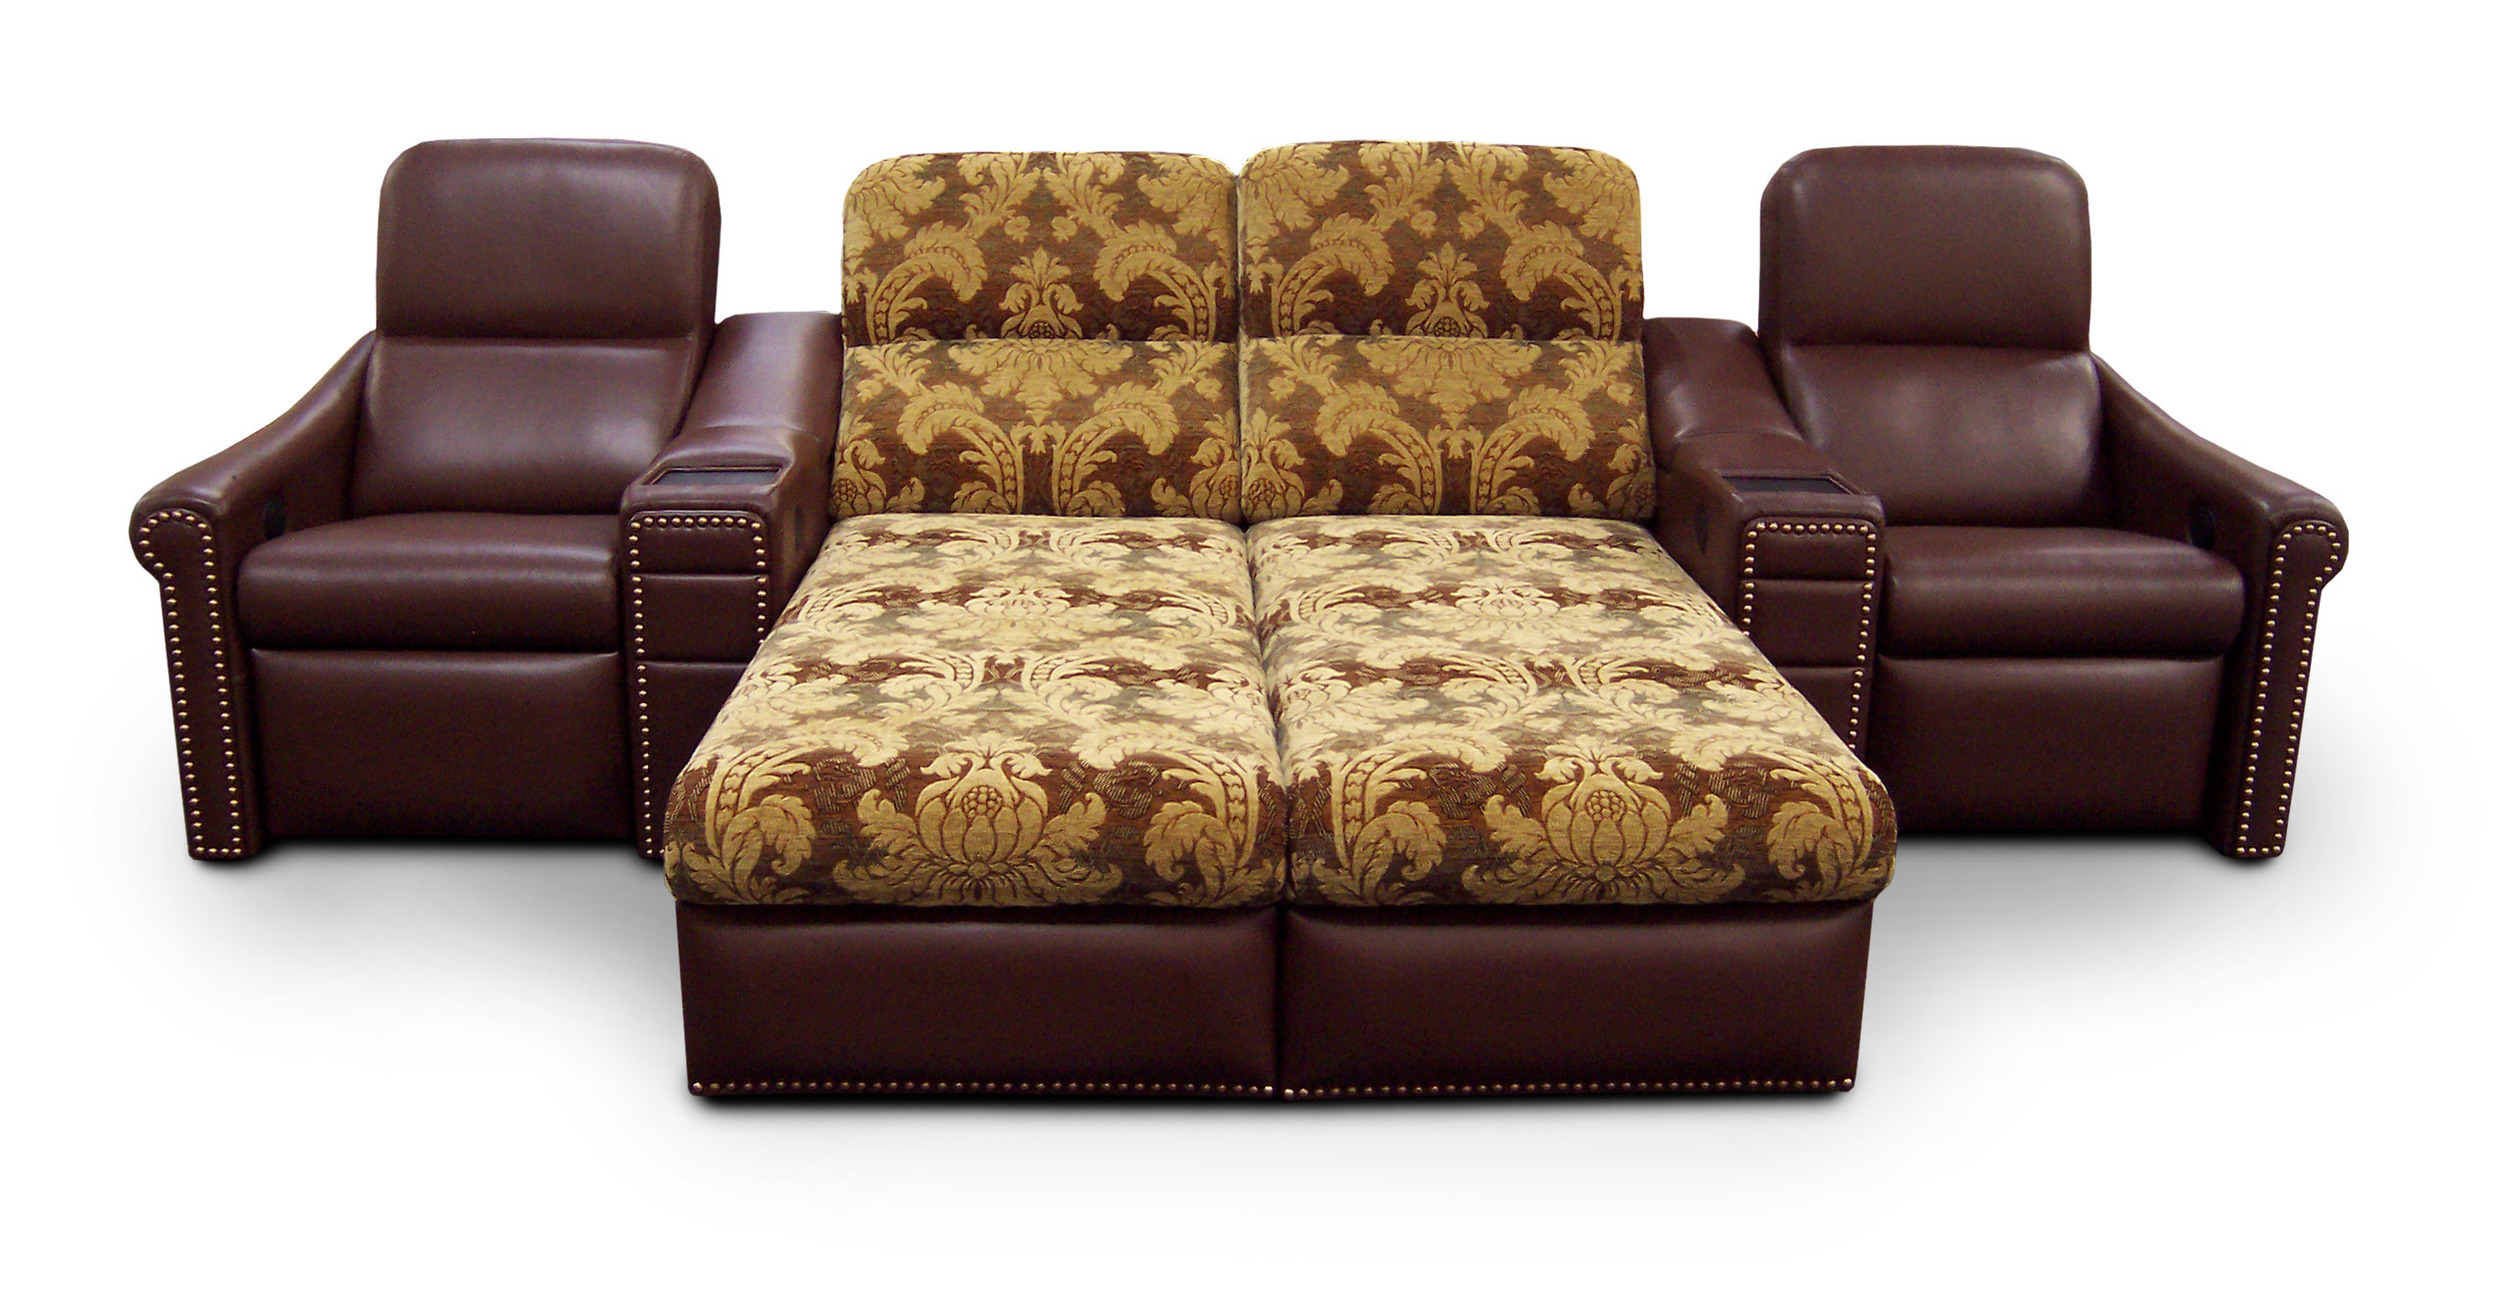 El Dorado Arms; Bijou Back; Single-Dual Chaise Lounger-Single; Front Access Cup Holders; Laminate Tray Tables